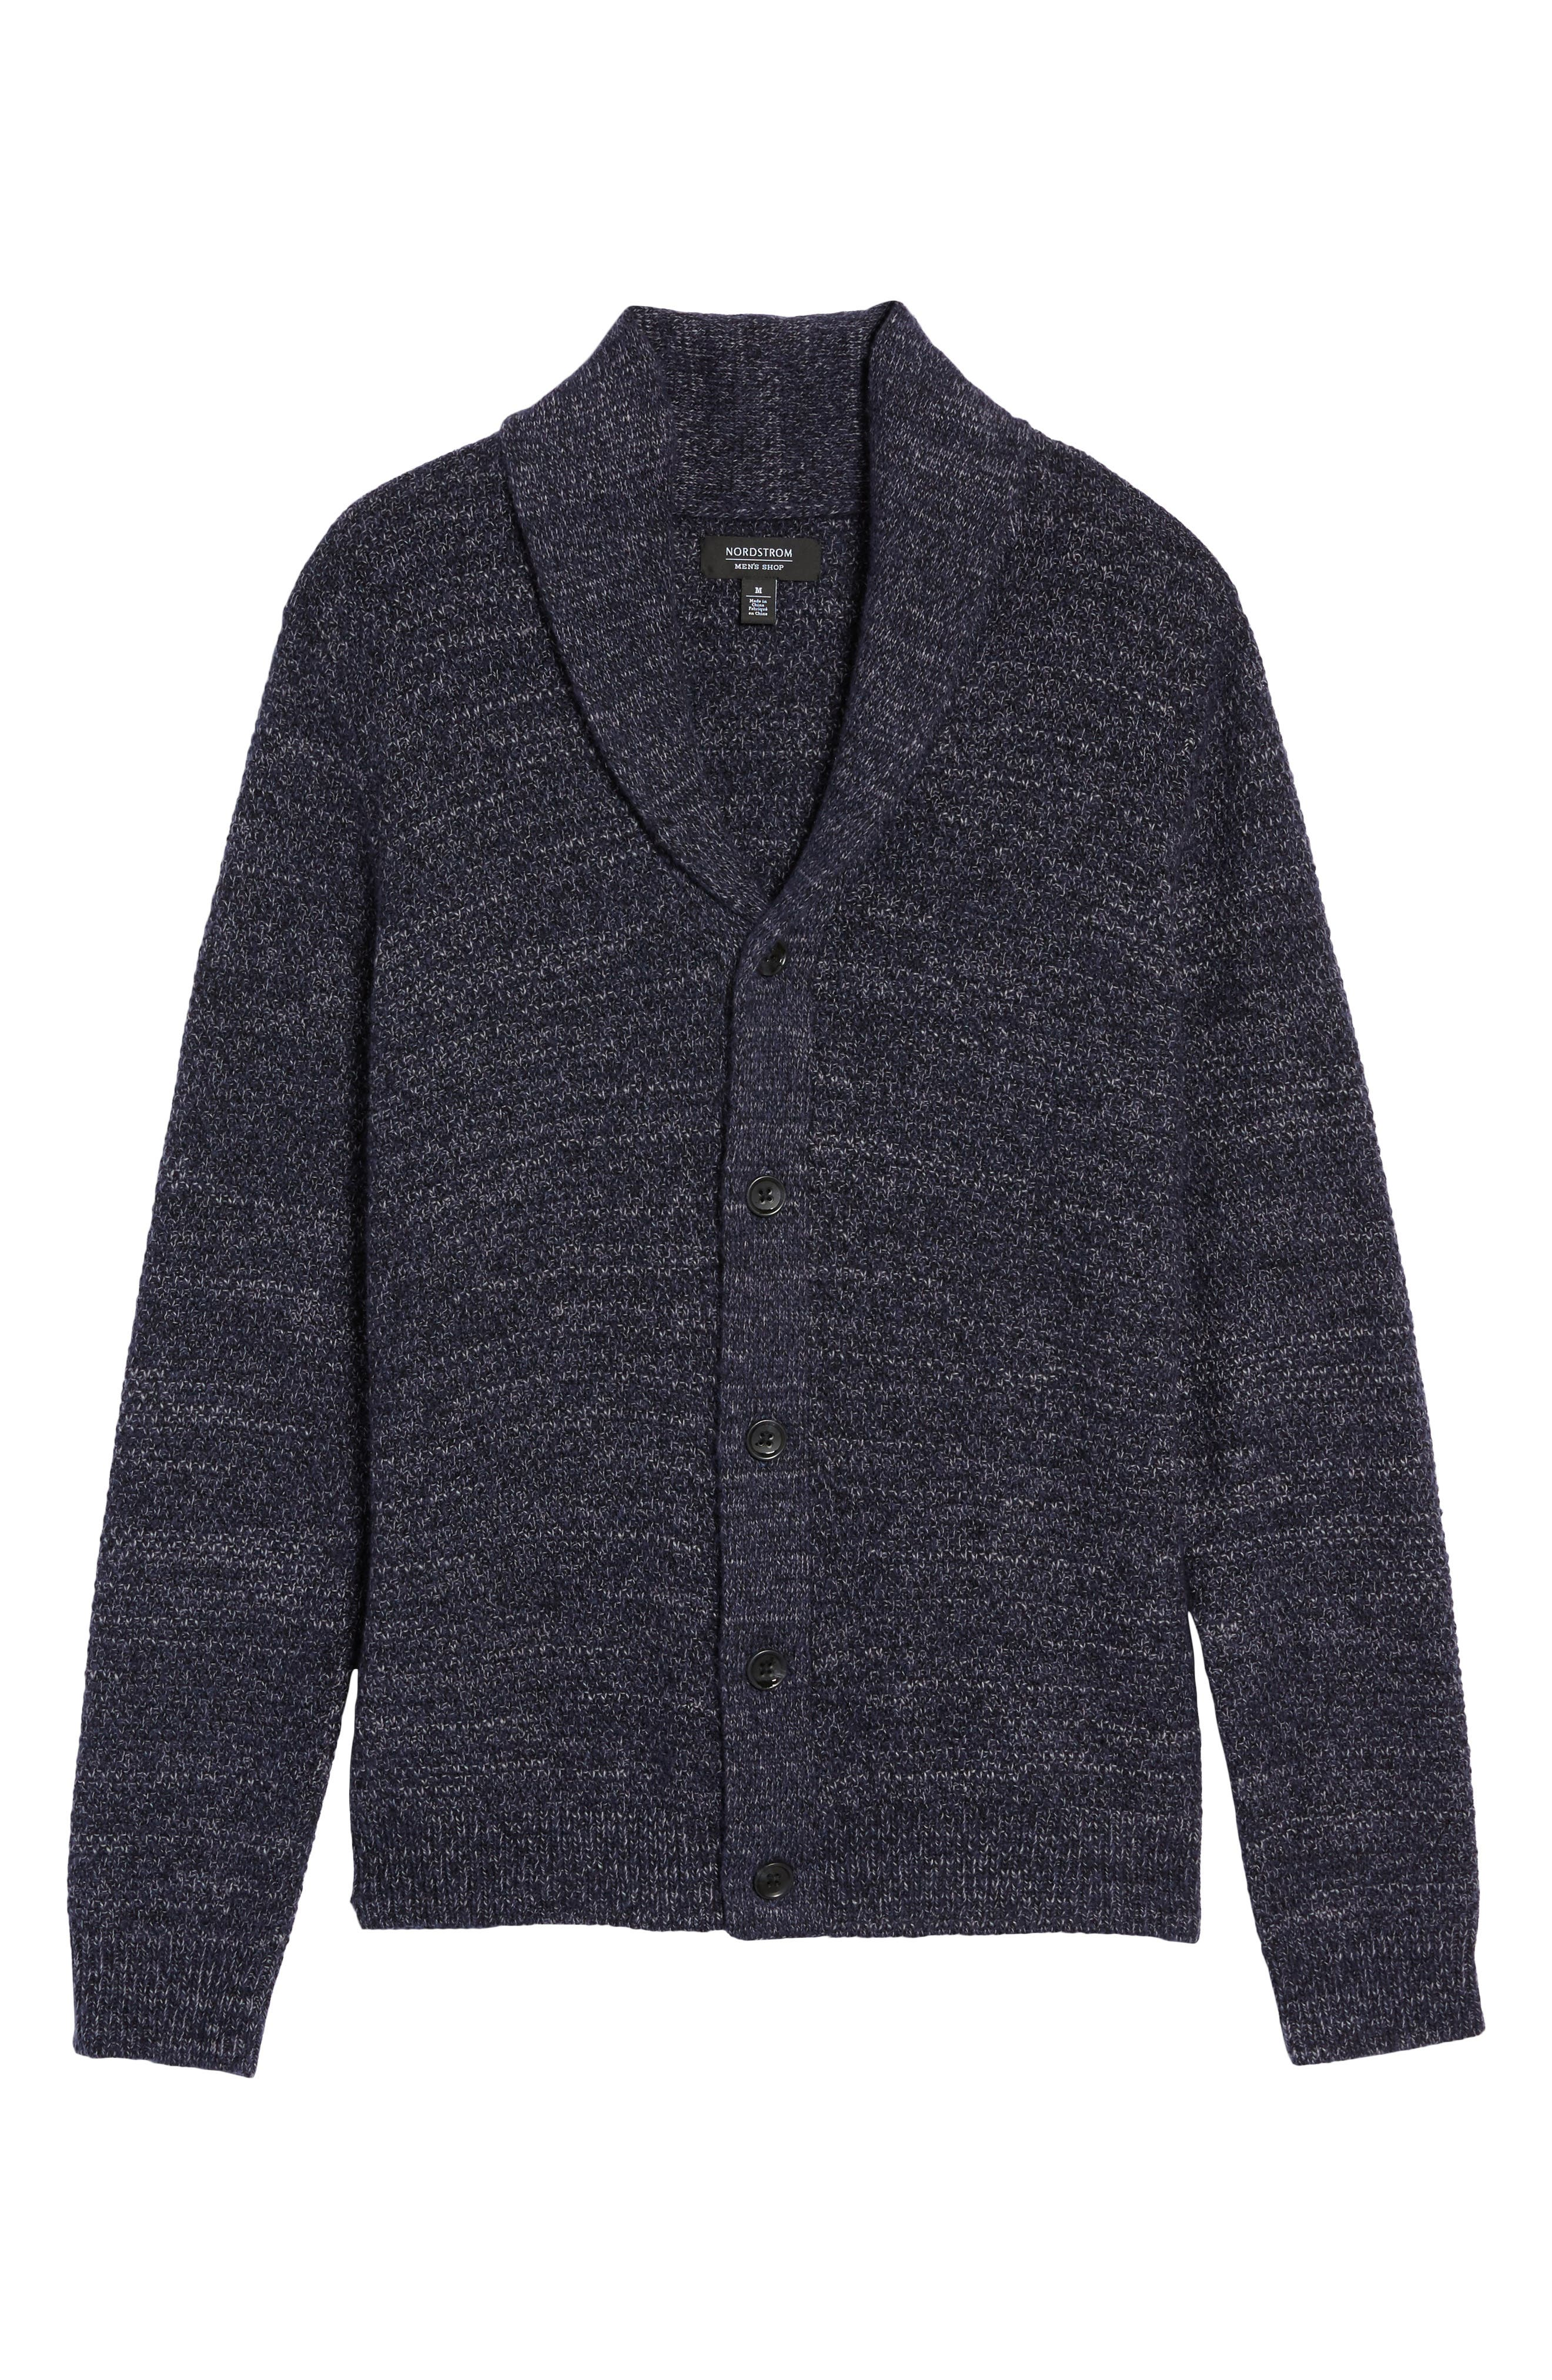 Shawl Collar Cardigan,                             Alternate thumbnail 6, color,                             Navy Iris Combo